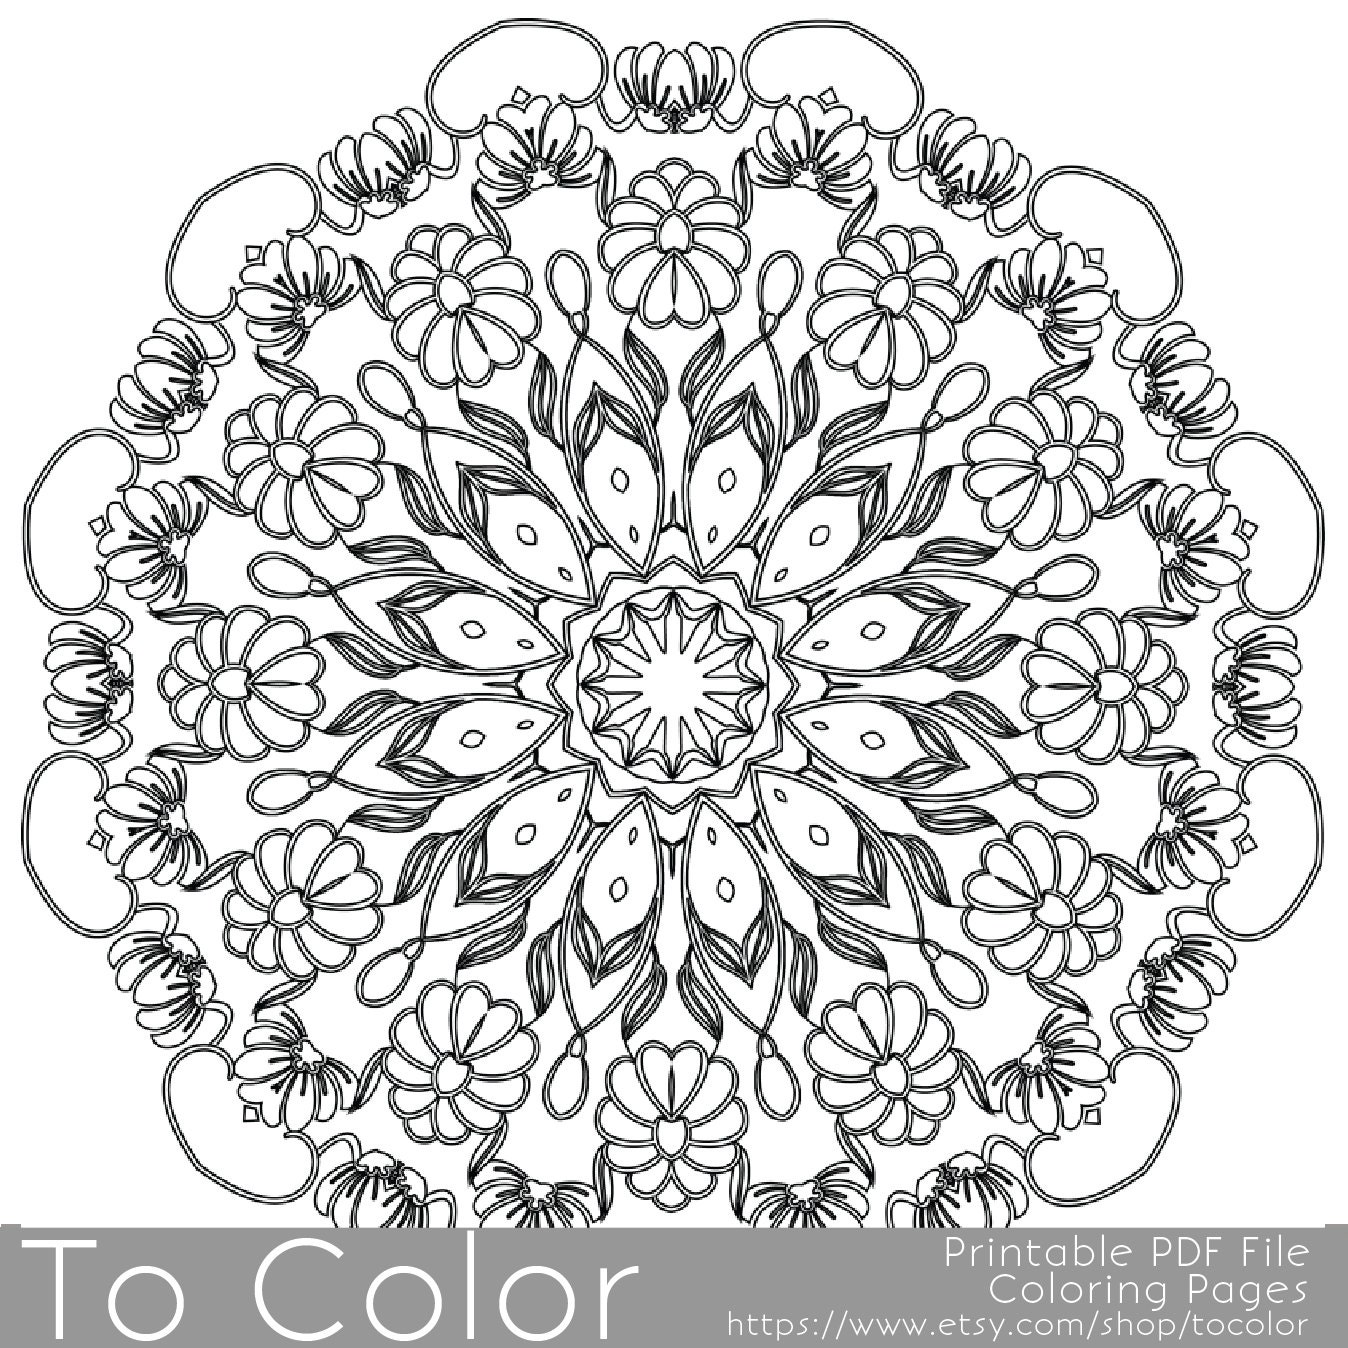 Coloring Pages For Adults: Intricate Printable Coloring Pages For Adults Gel Pens By